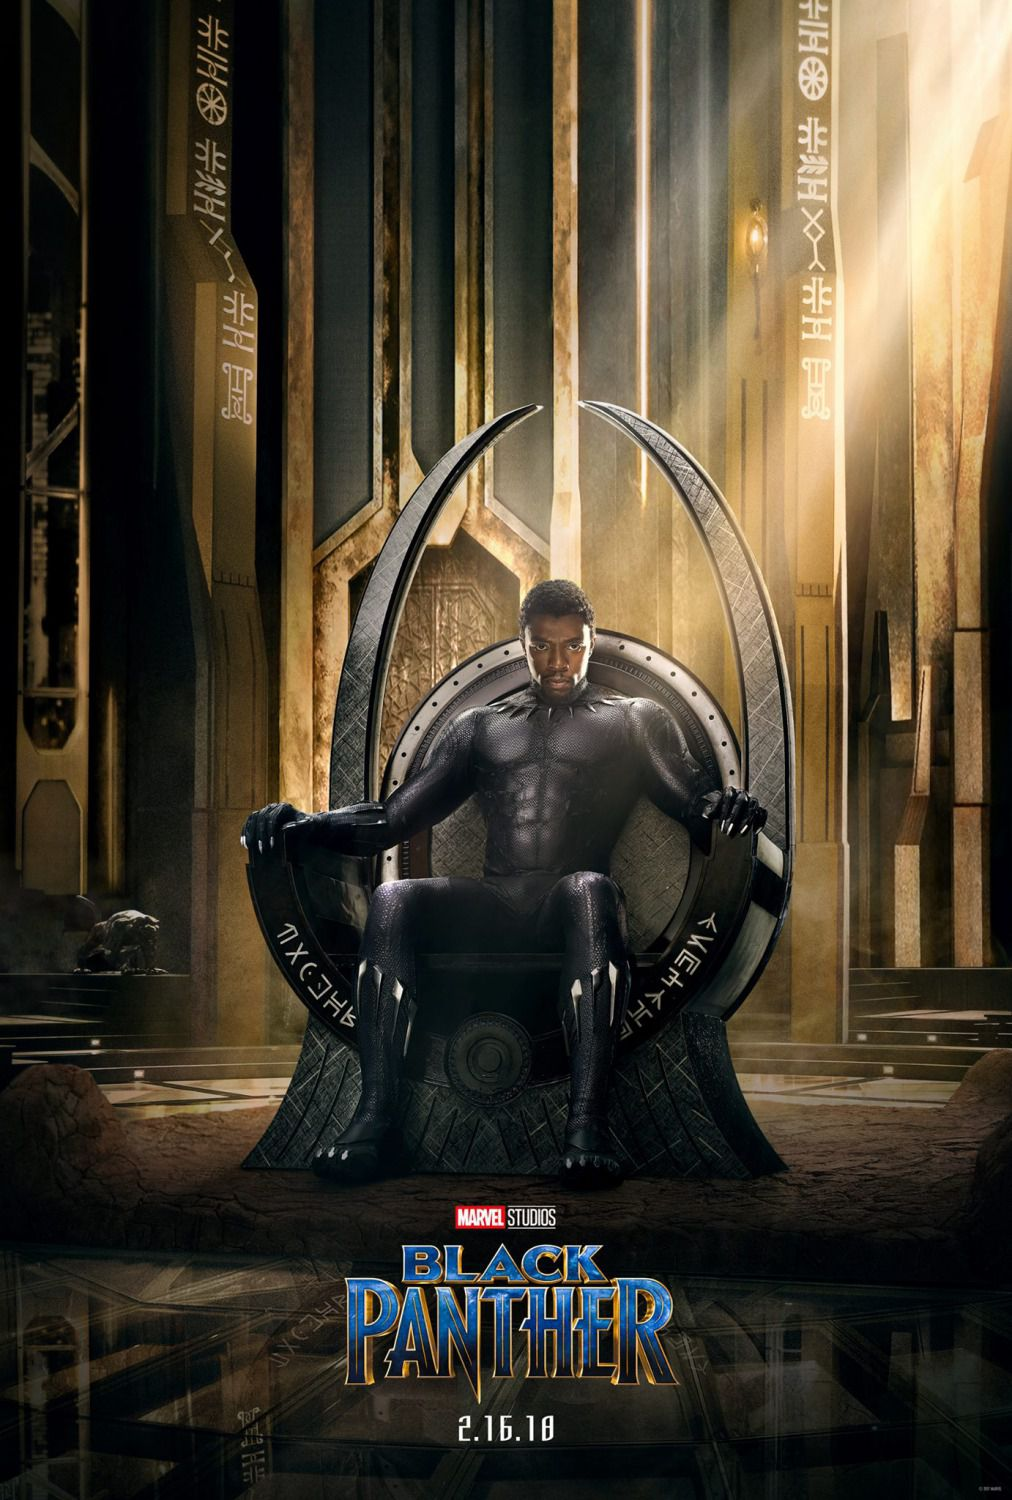 Black Panther - Marvel Super film live action - poster